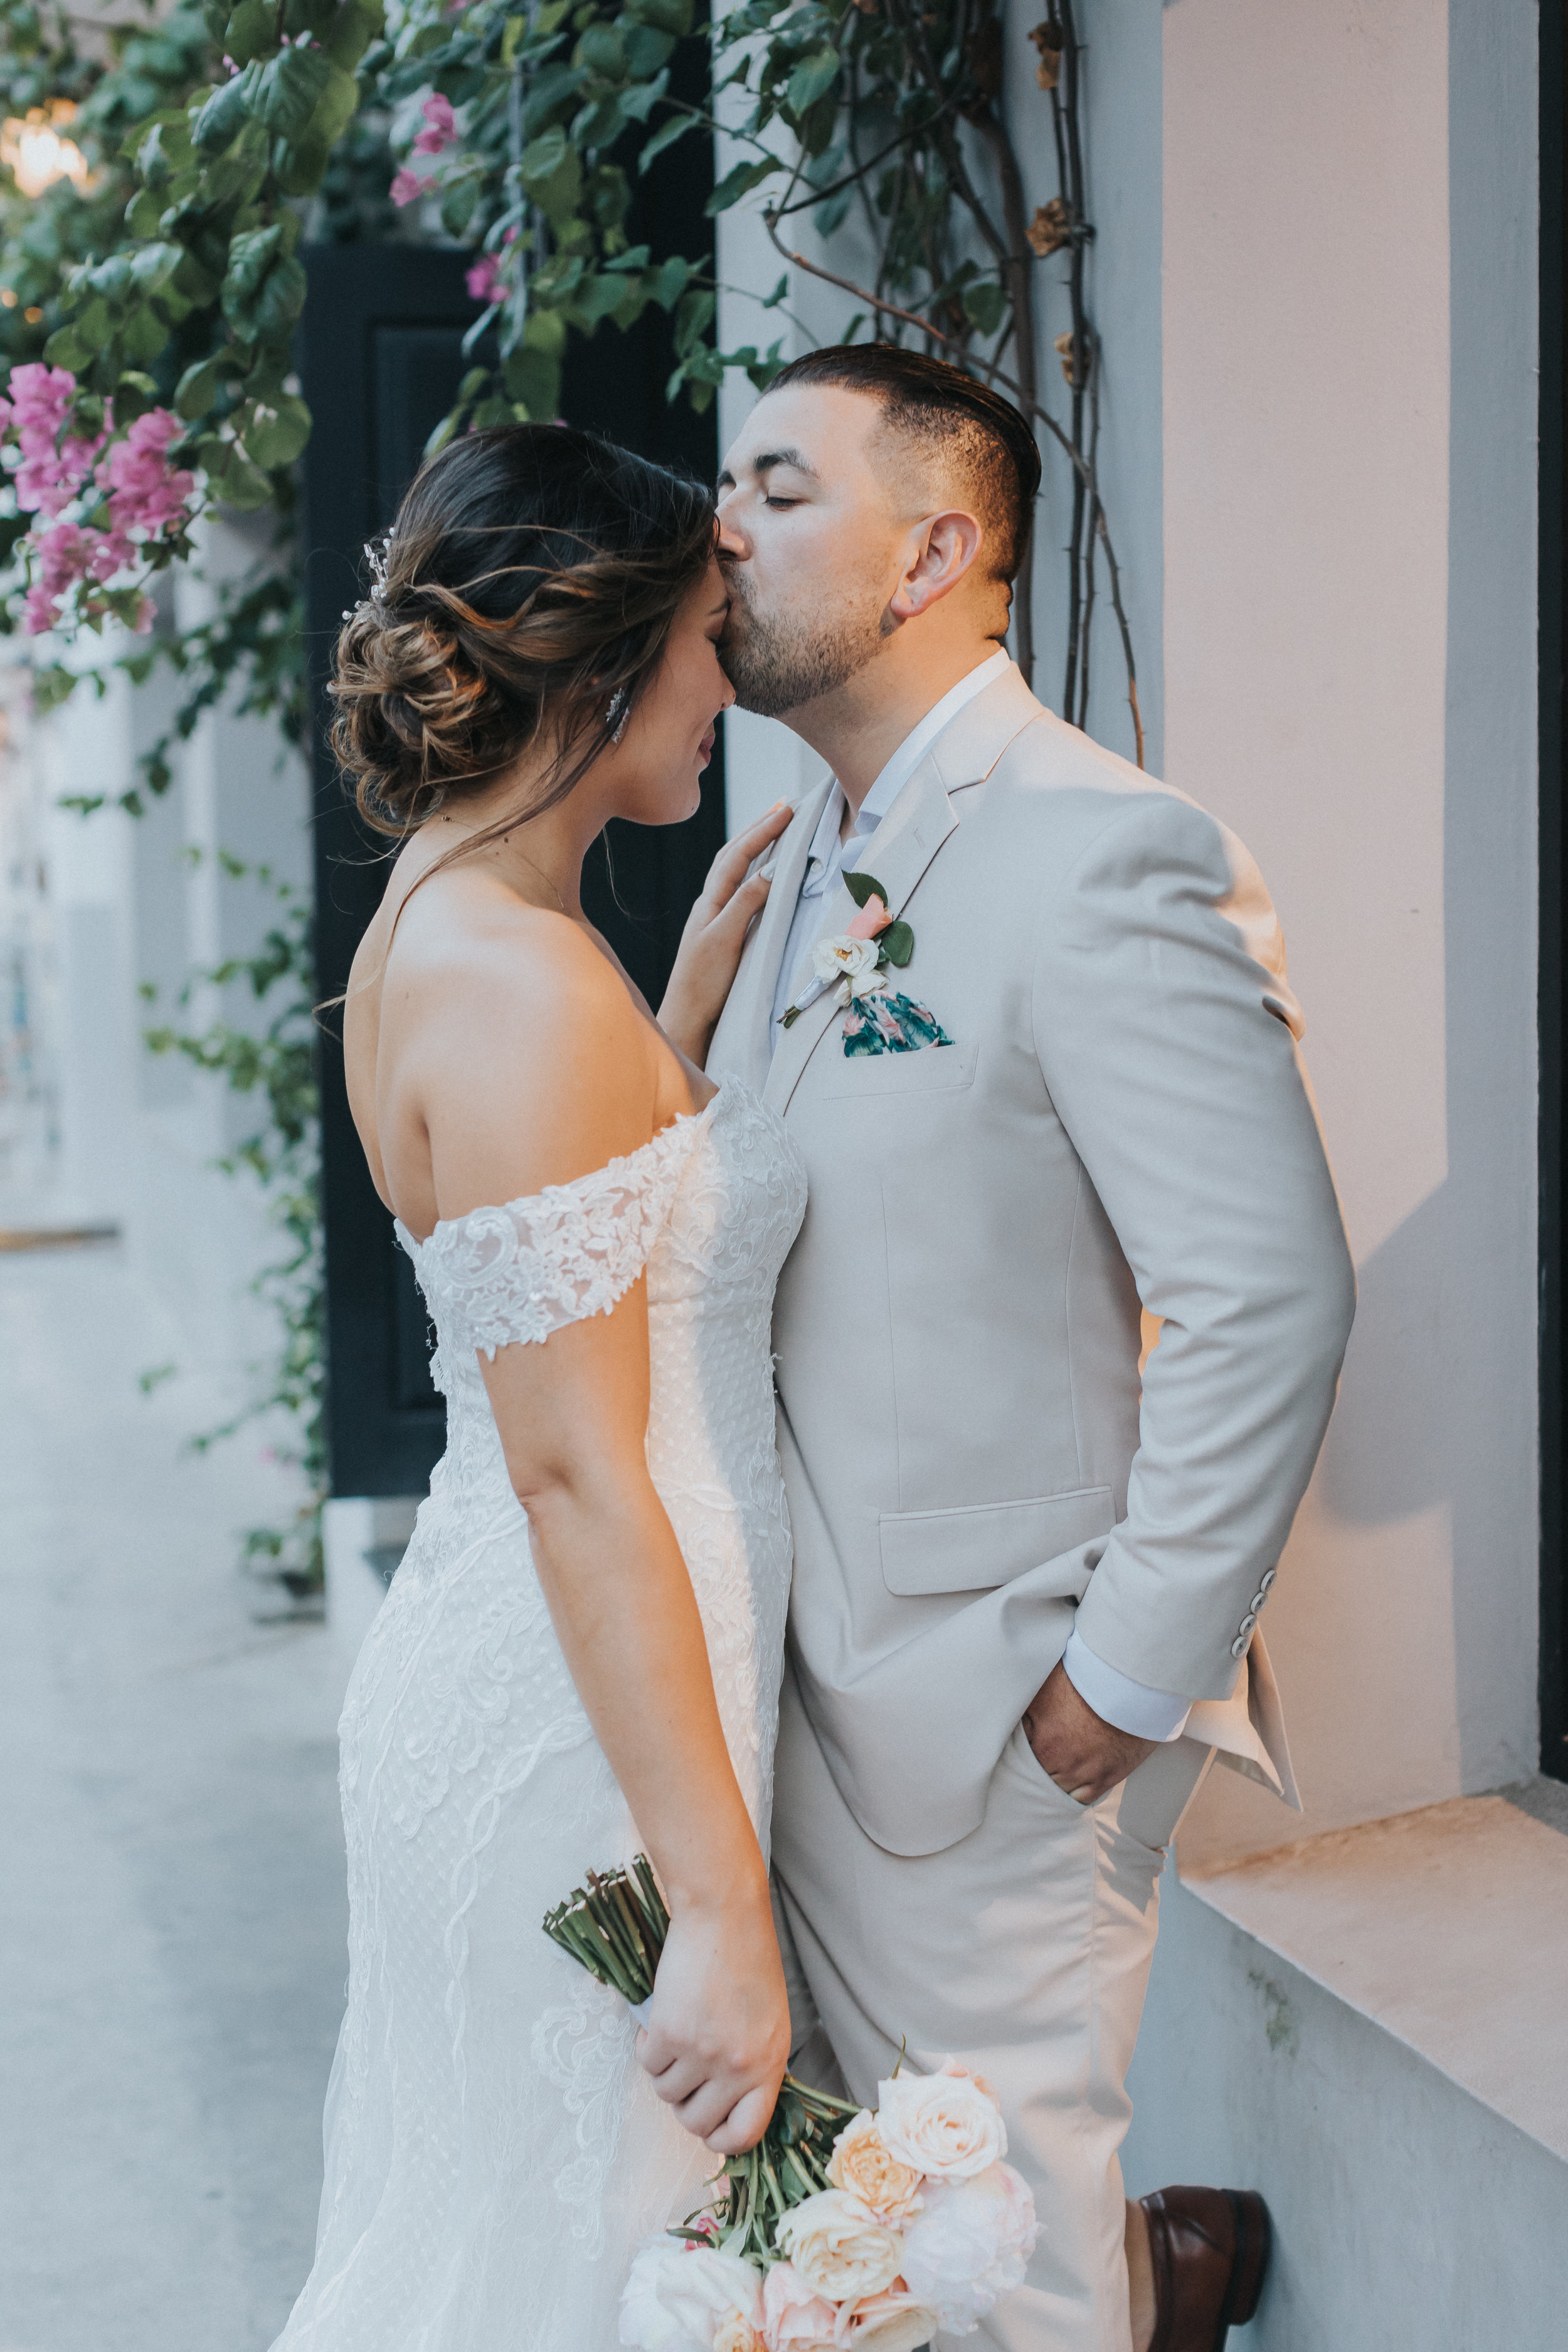 Karissa and Isreal post ceremony on the streets of Casco Viejo.